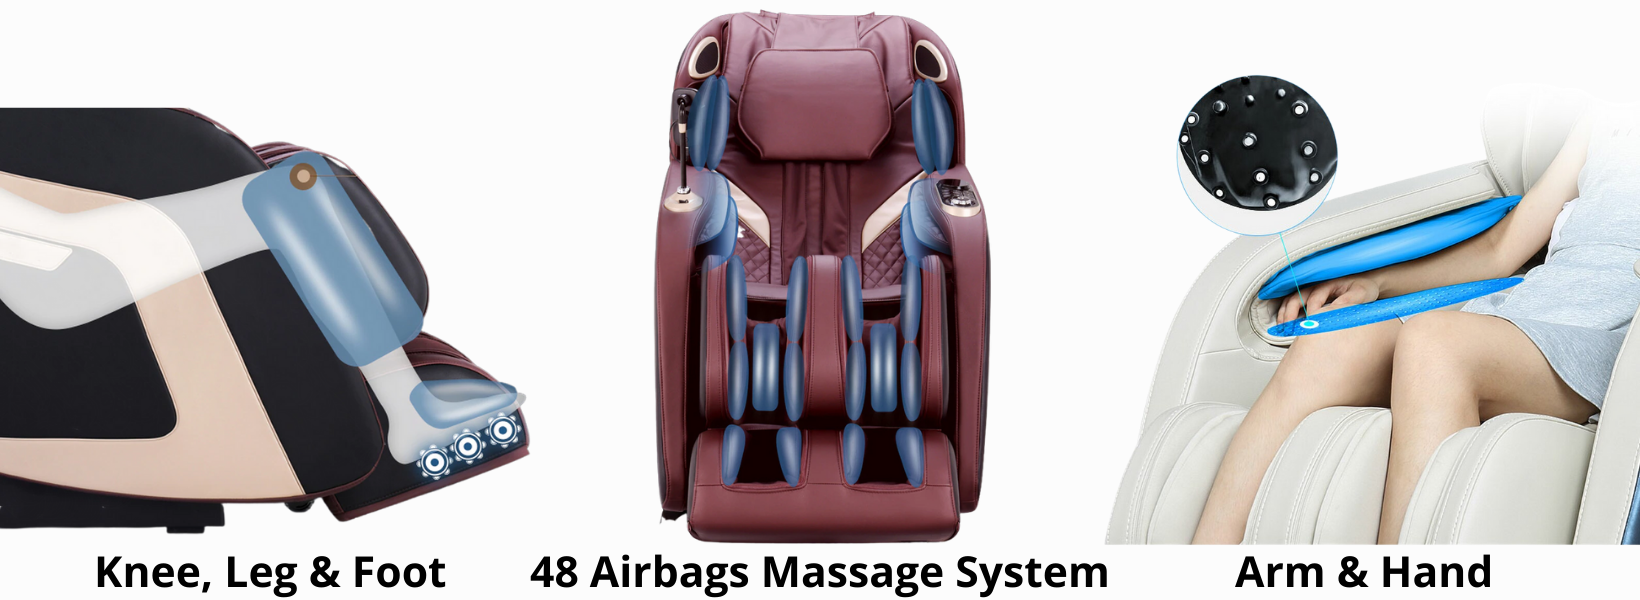 48 Airbag Massage System: Built into the chair are 48 airbags that rhythmically inflate and deflate during your massage session. These airbags gently stretch muscles to ease tension and fatigue and to improve circulation. Airbags are located on the shoulders, around the arms, and even under the thighs and calves to allow a full-body stretch.